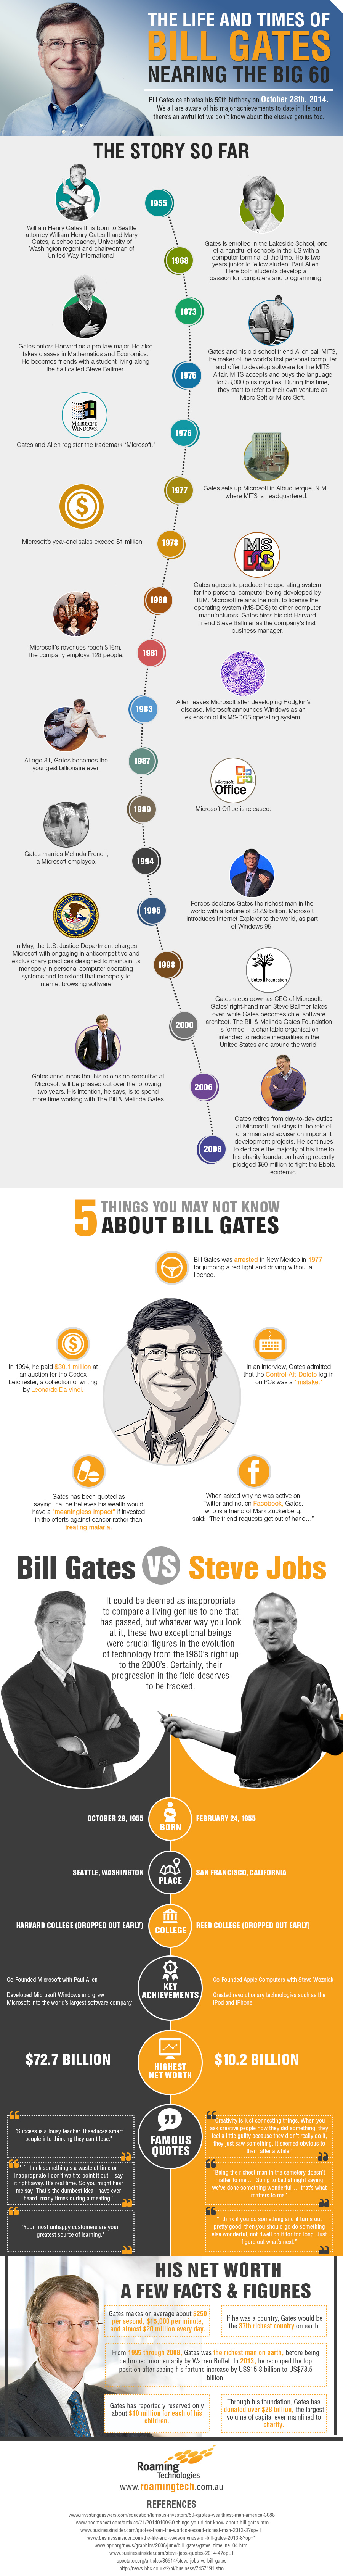 The Life and Times of Bill Gates - Nearing the Big 60